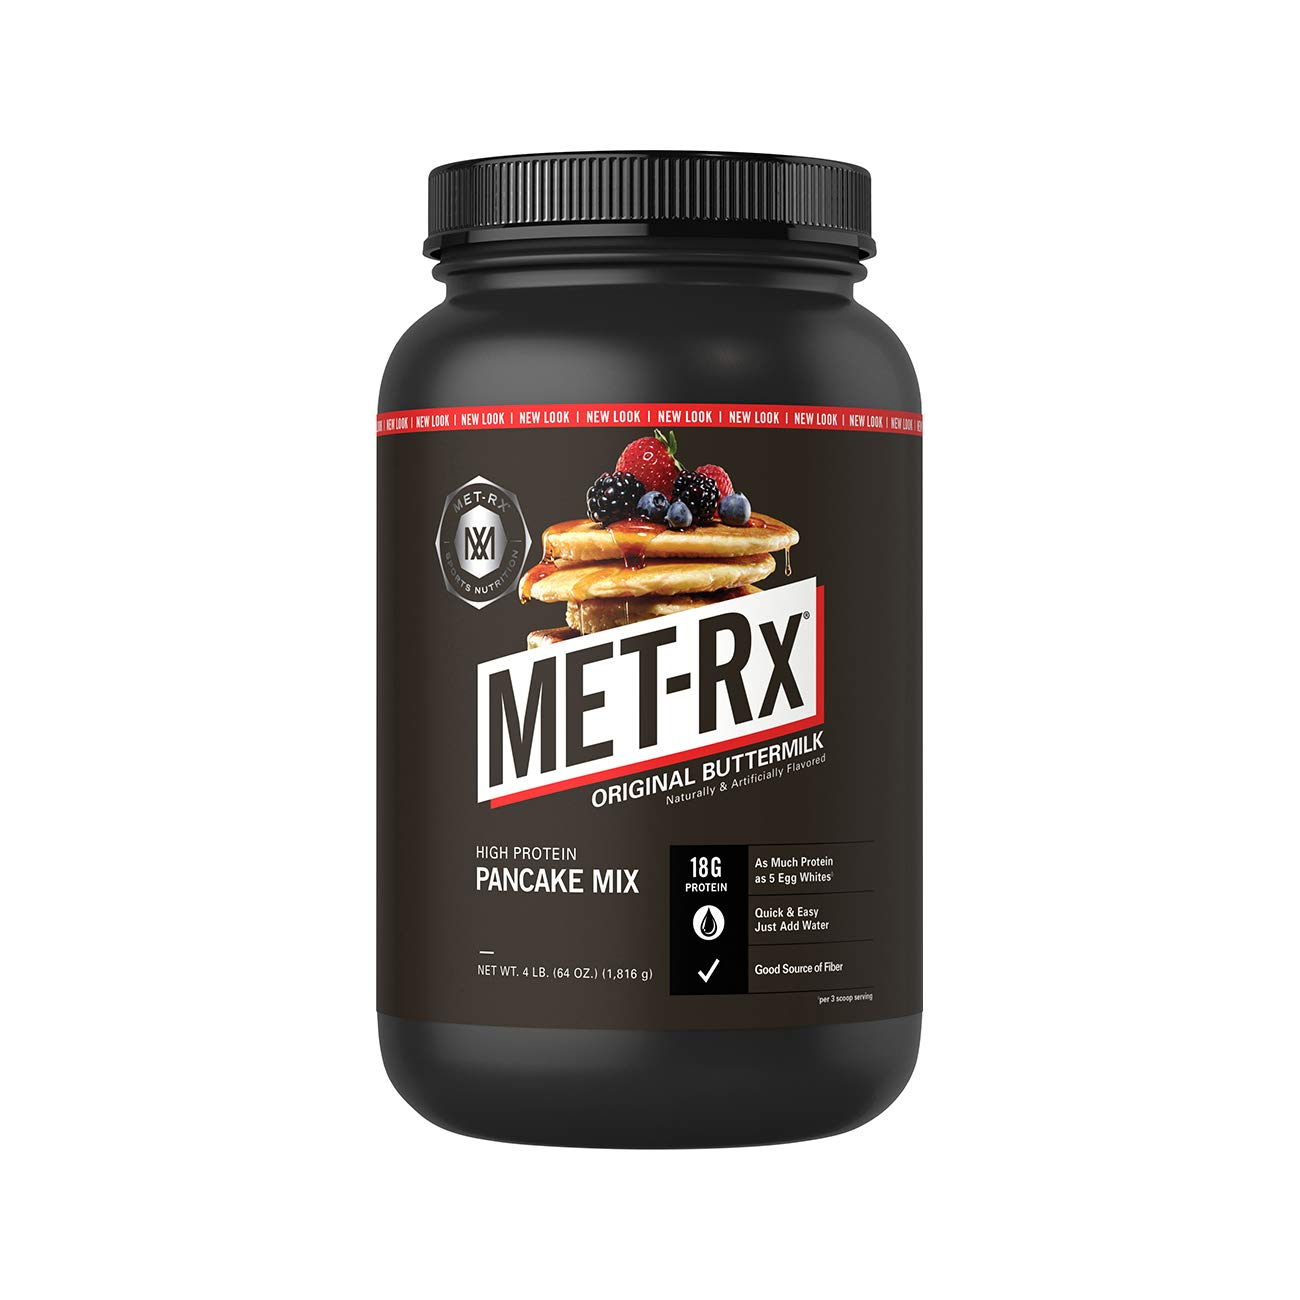 MET-Rx High Protein Pancake Mix, Original Buttermilk, 4 pound by MET-Rx